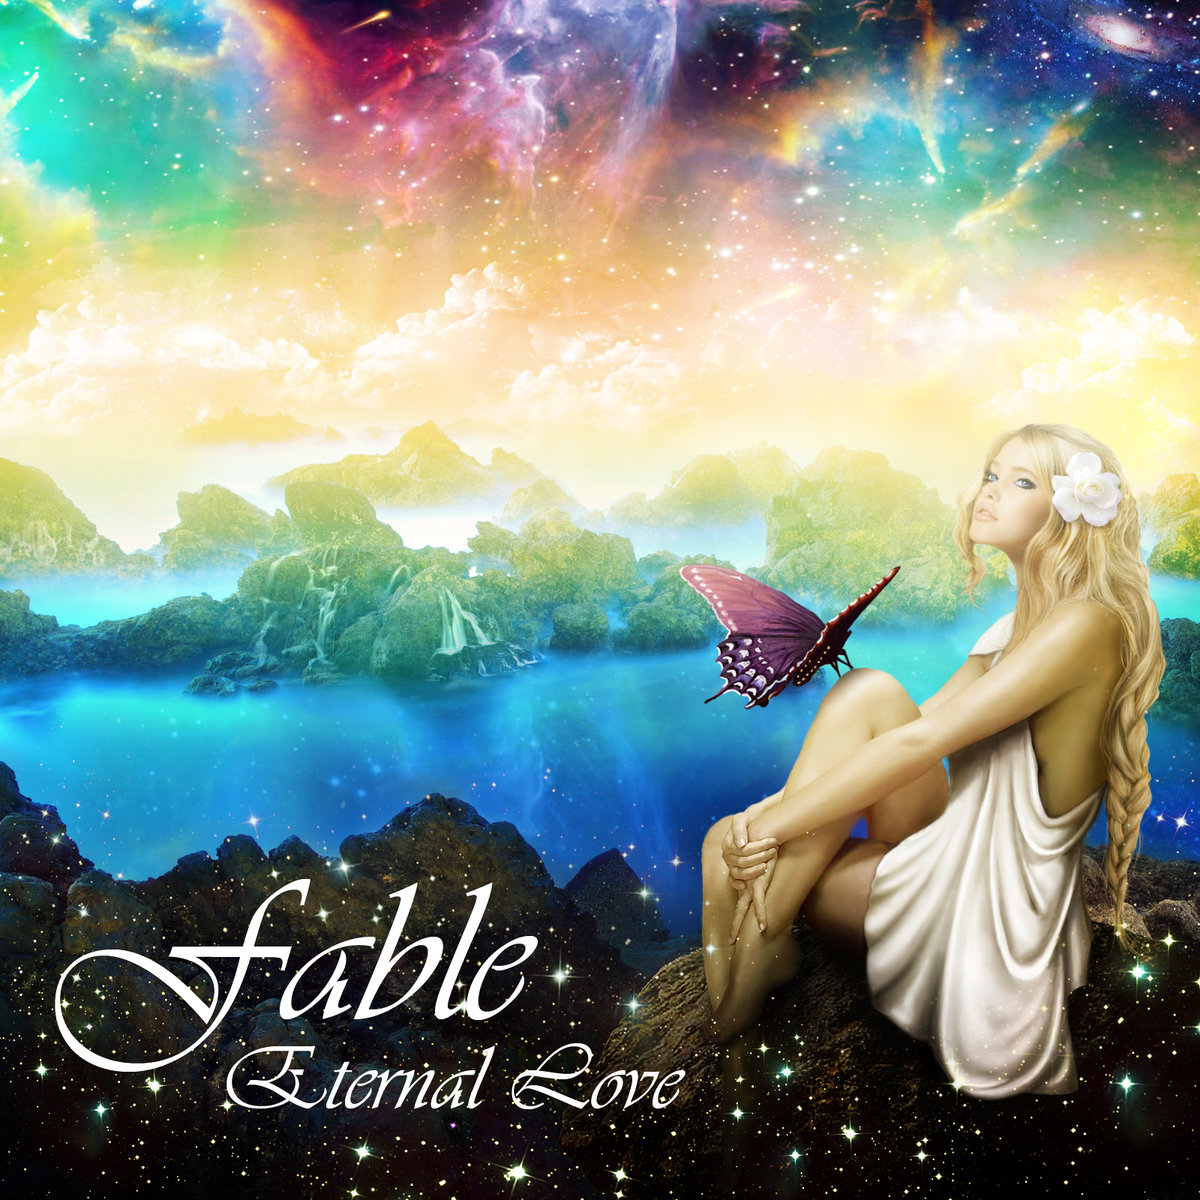 Eternal Love - By Your Side (feat. Rina) @ 'Fable' album (ambient, by your side)